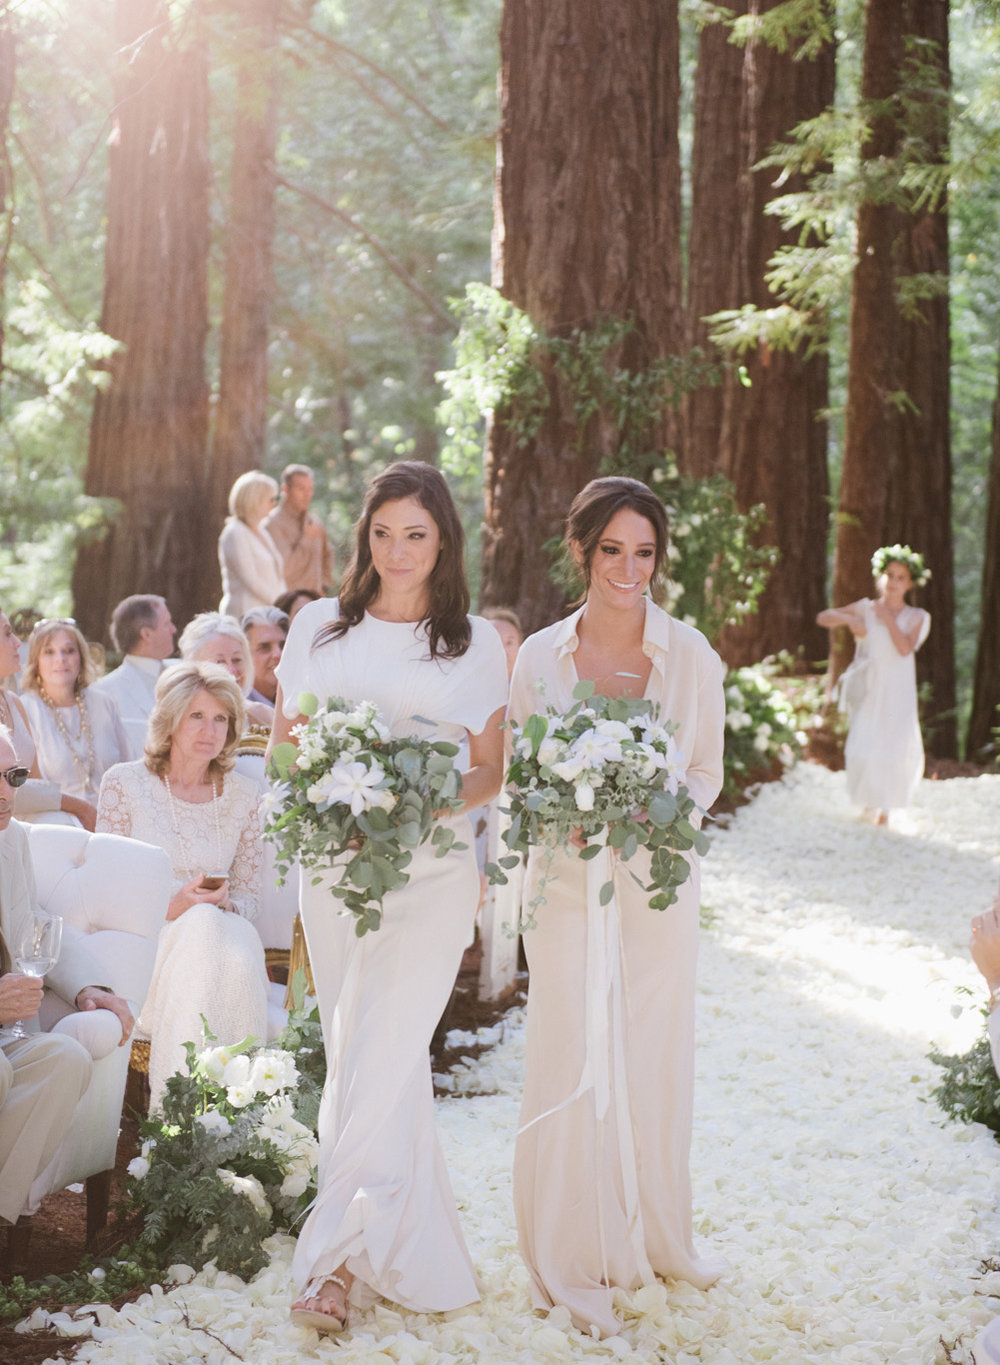 Bridesmaids with eucalyptus bouquets walk up the flower petal strewn aisle among the redwoods in Santa Lucia Preserve; Sylvie Gil Photography